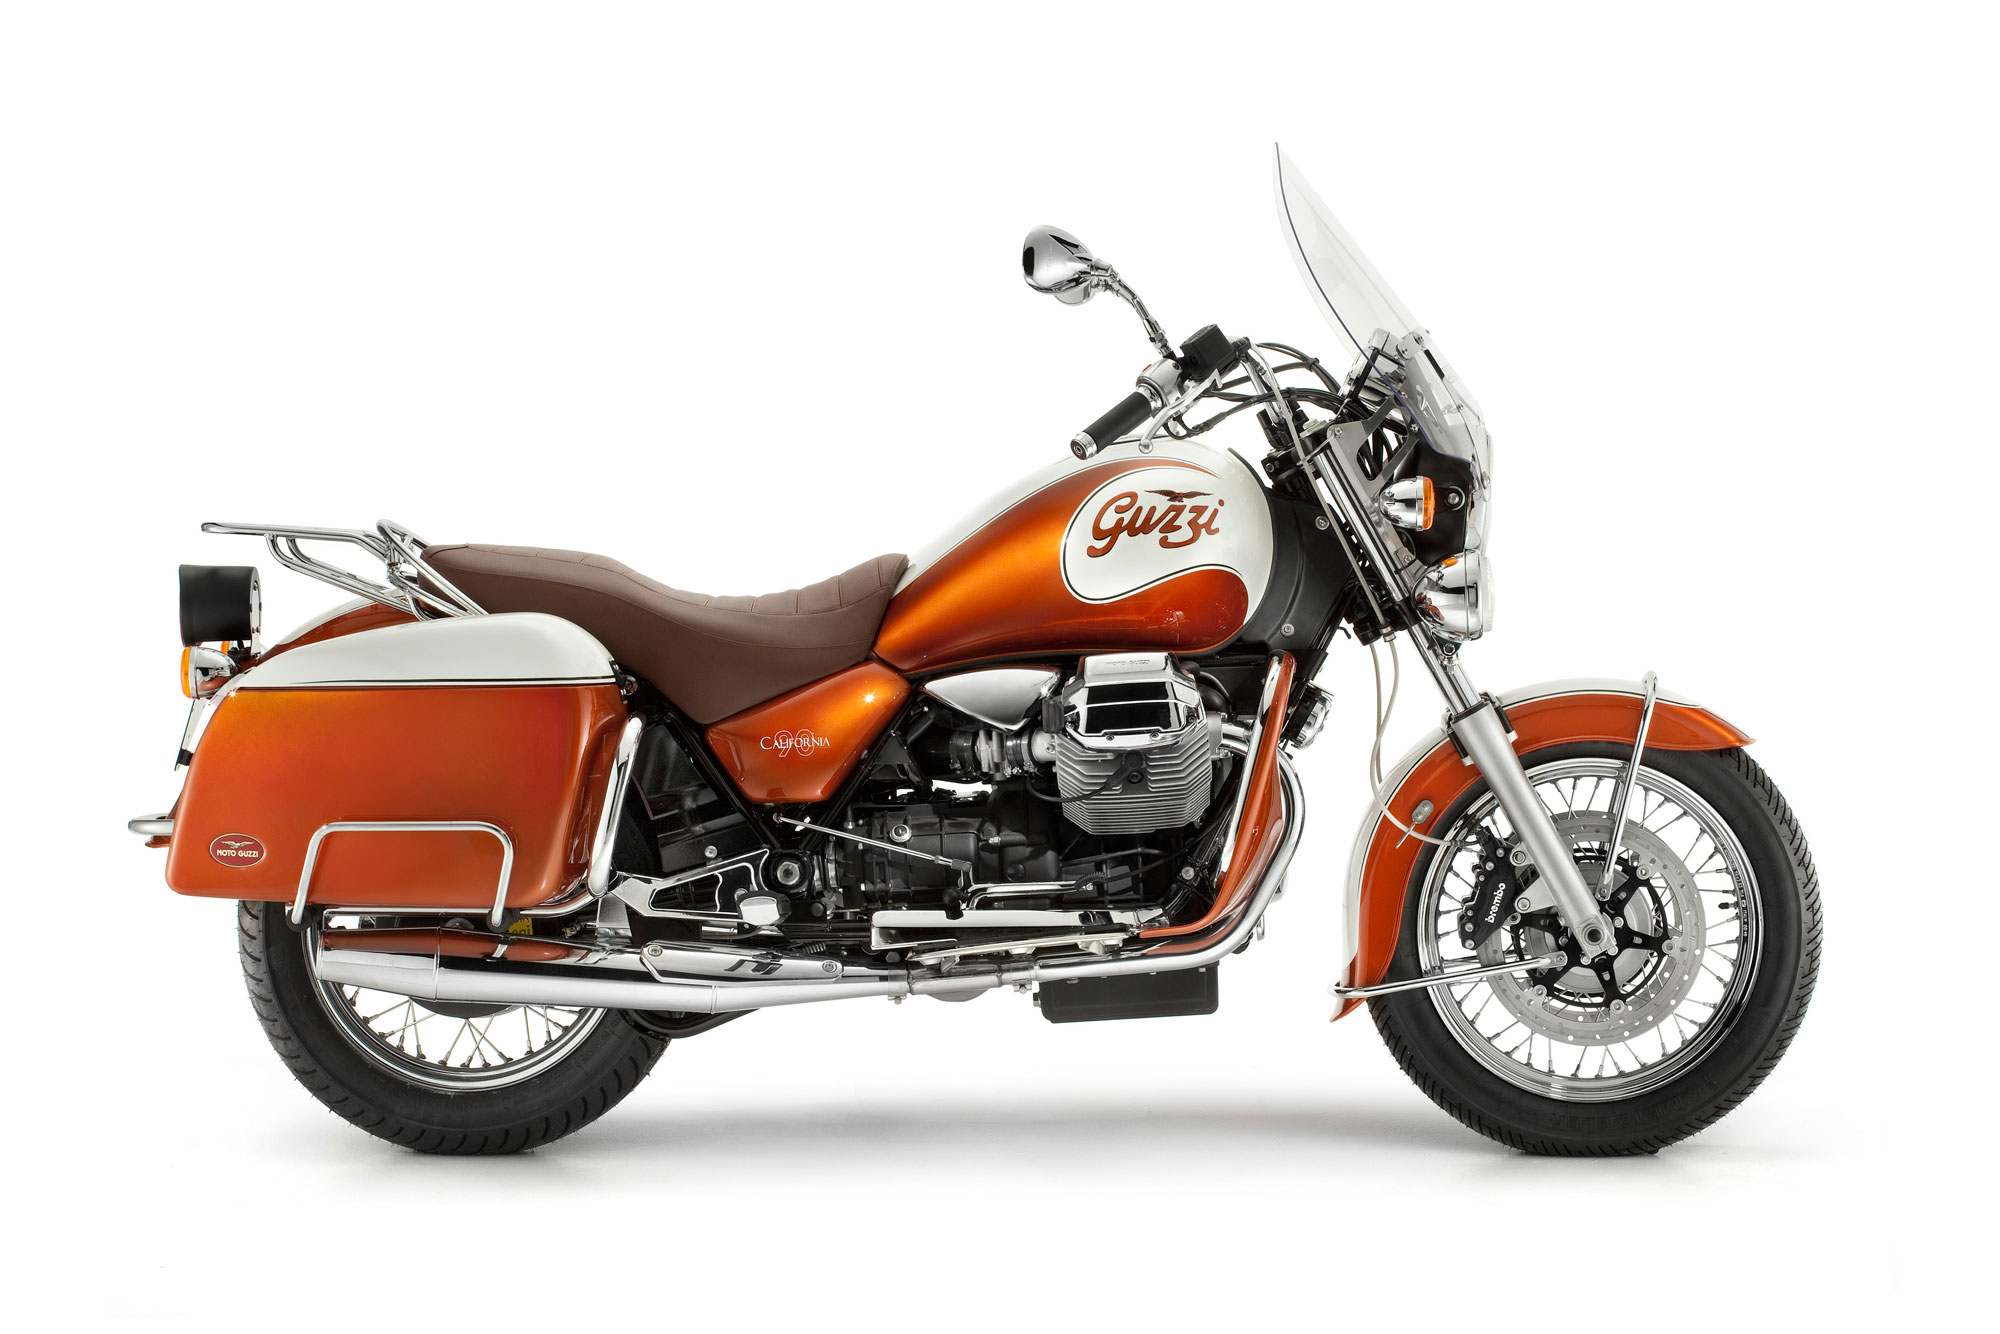 Moto Guzzi California 75 2000 images #108445